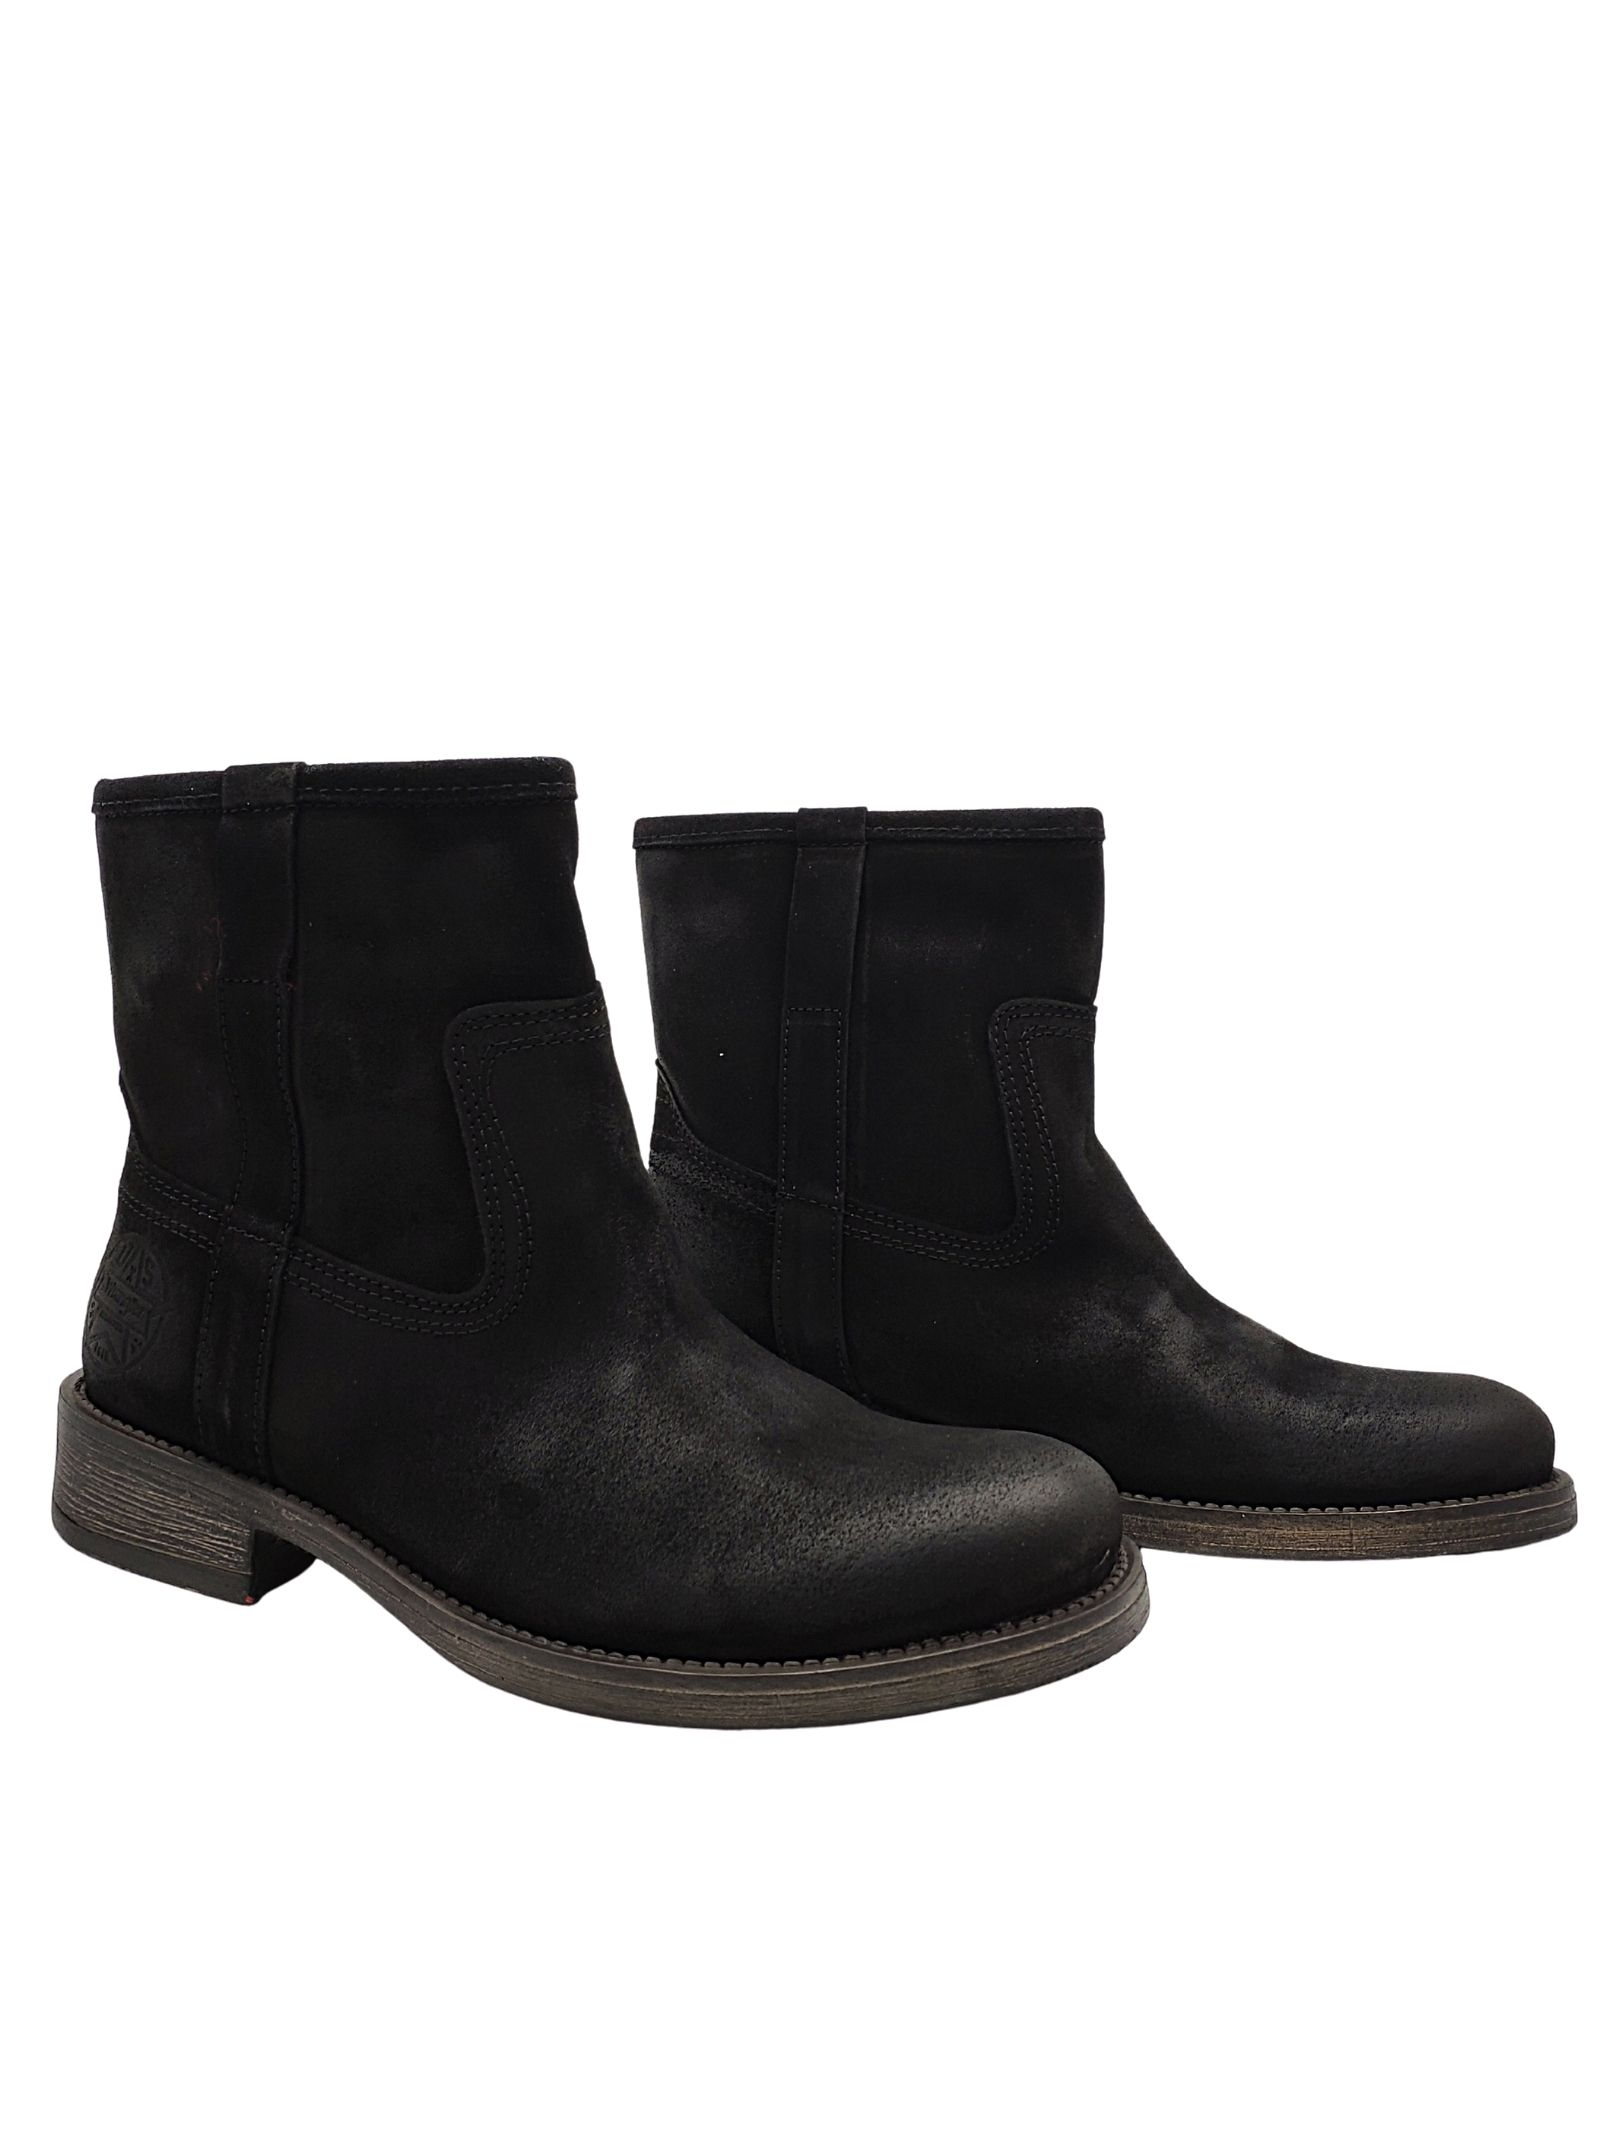 Phoenix Low Ankle Boots Woman Wrangler | Ankle Boots | WL02601A062